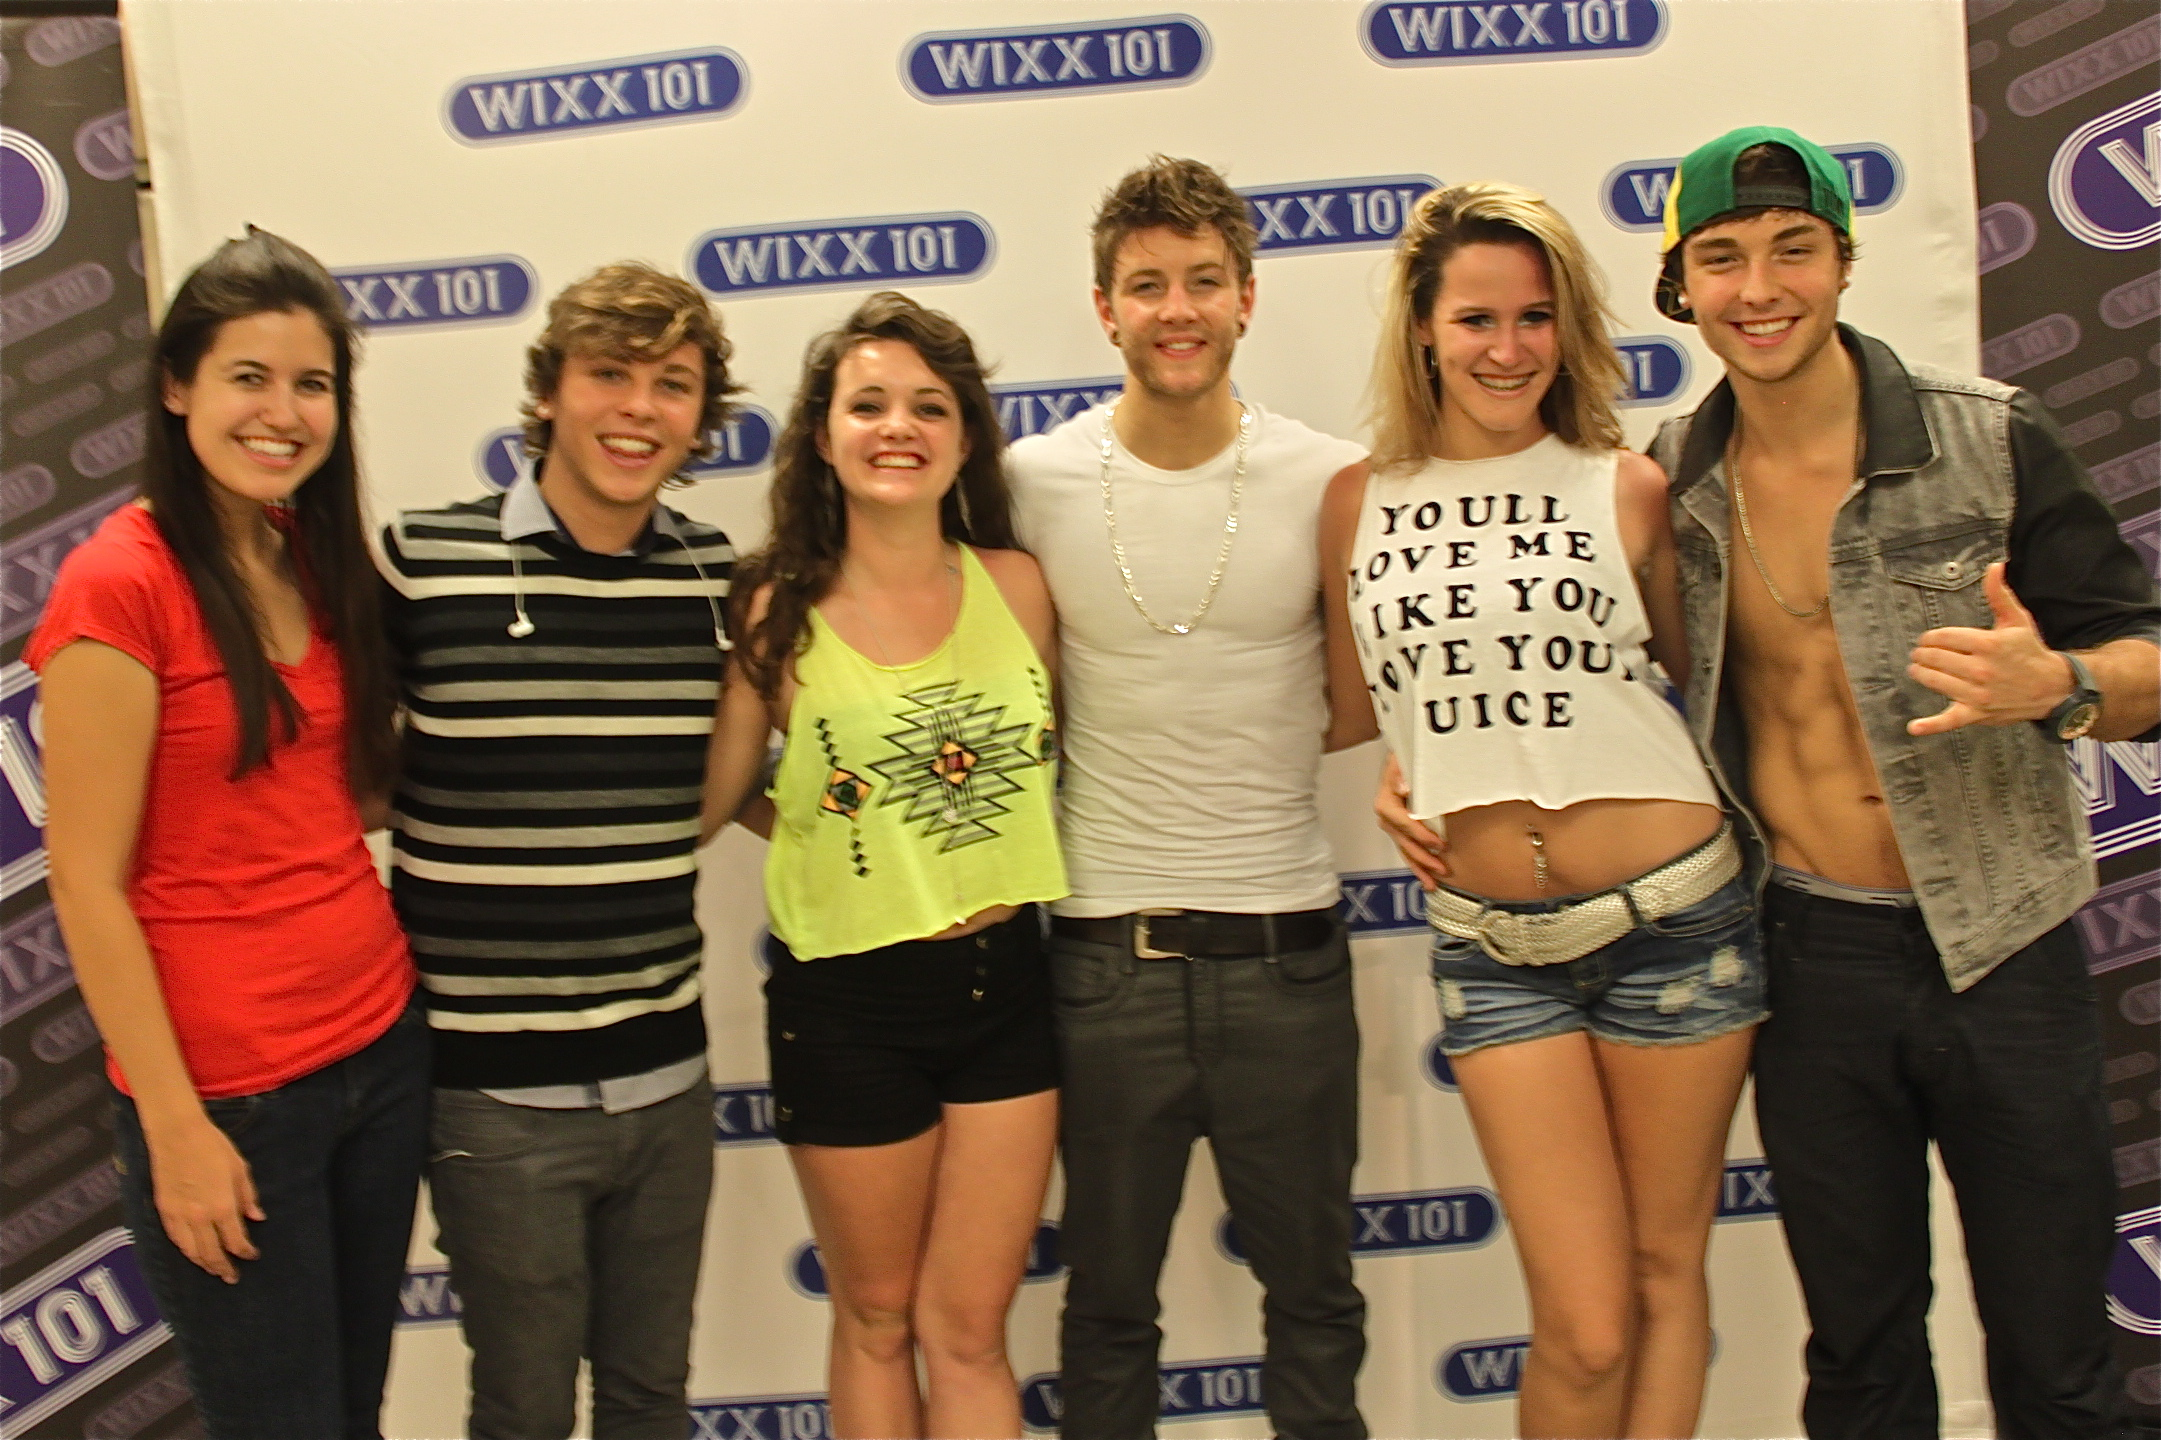 Photo 8 of 23 emblem3 meet and greet wixx back to school photo 8 of 23 emblem3 meet and greet wixx back to school concert 101 wixx m4hsunfo